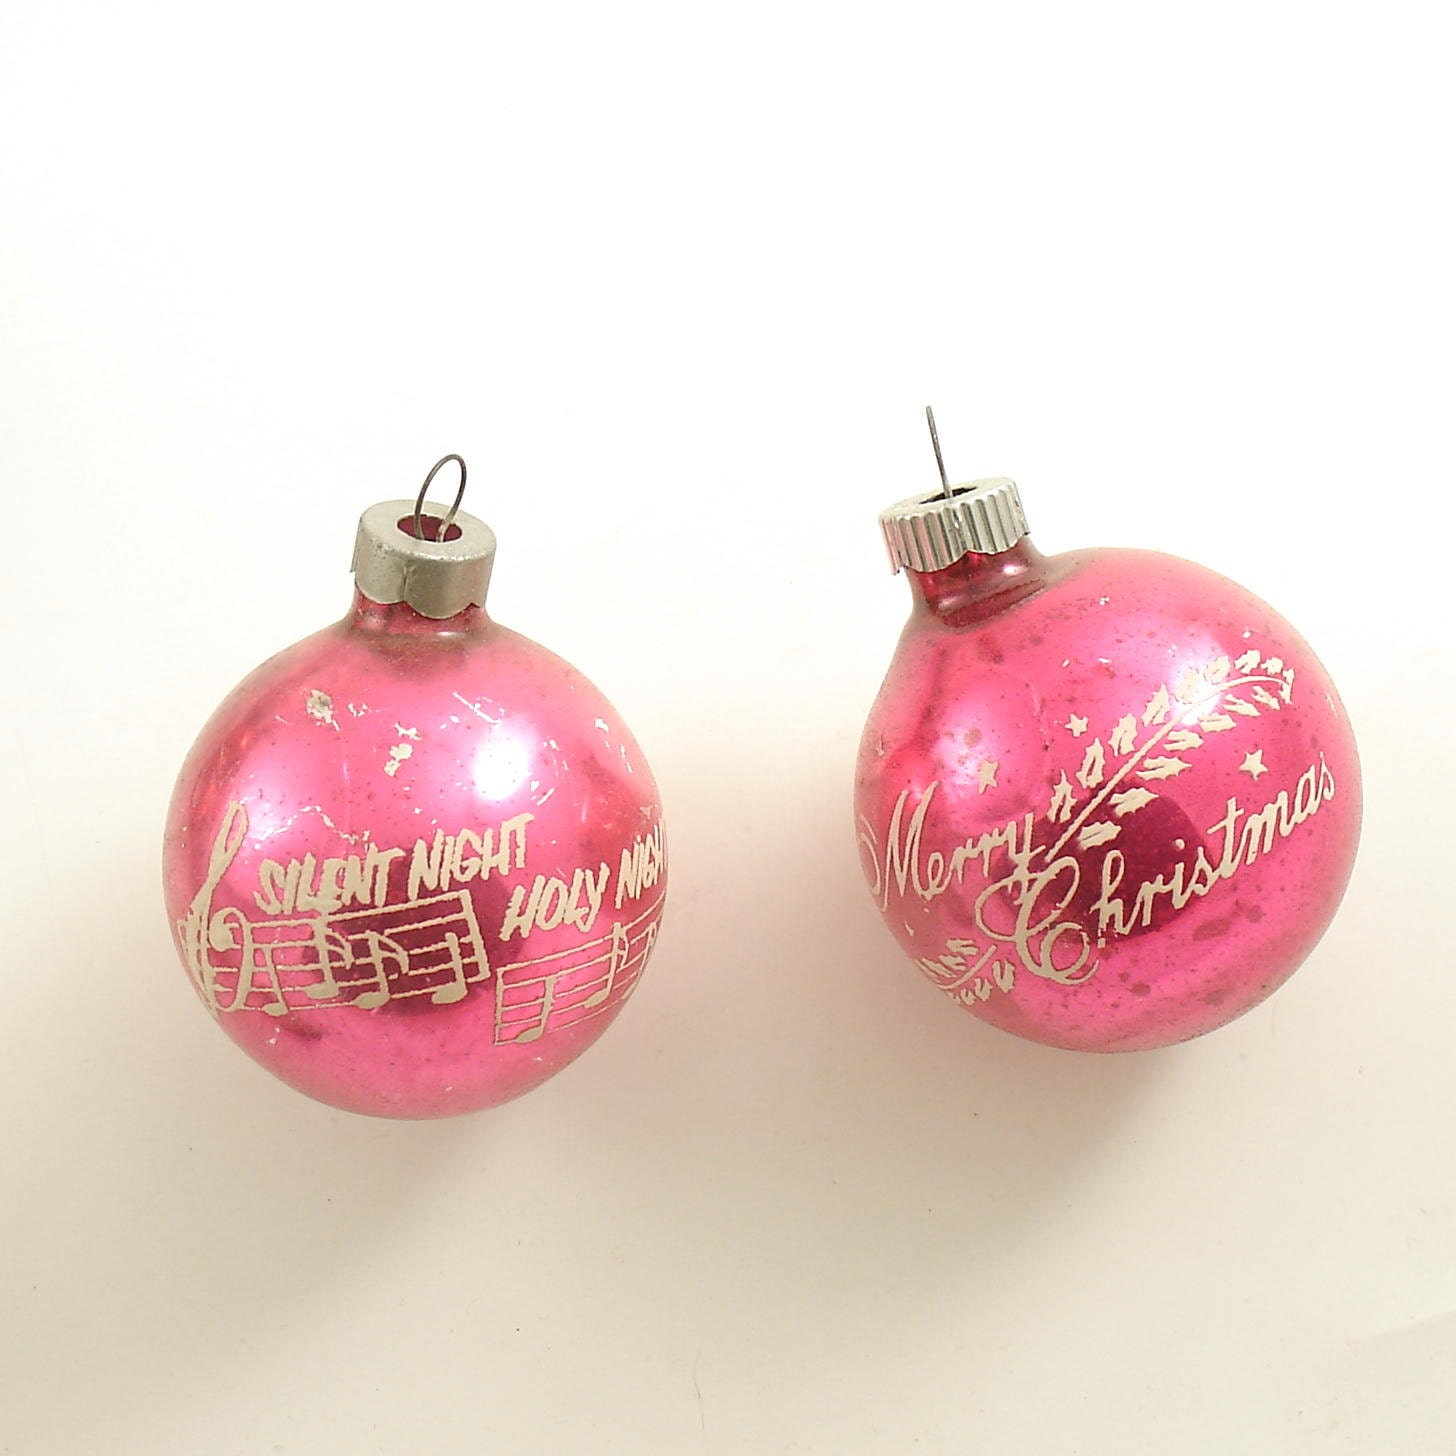 Vintage glass christmas ornaments shiny brite by efinegifts